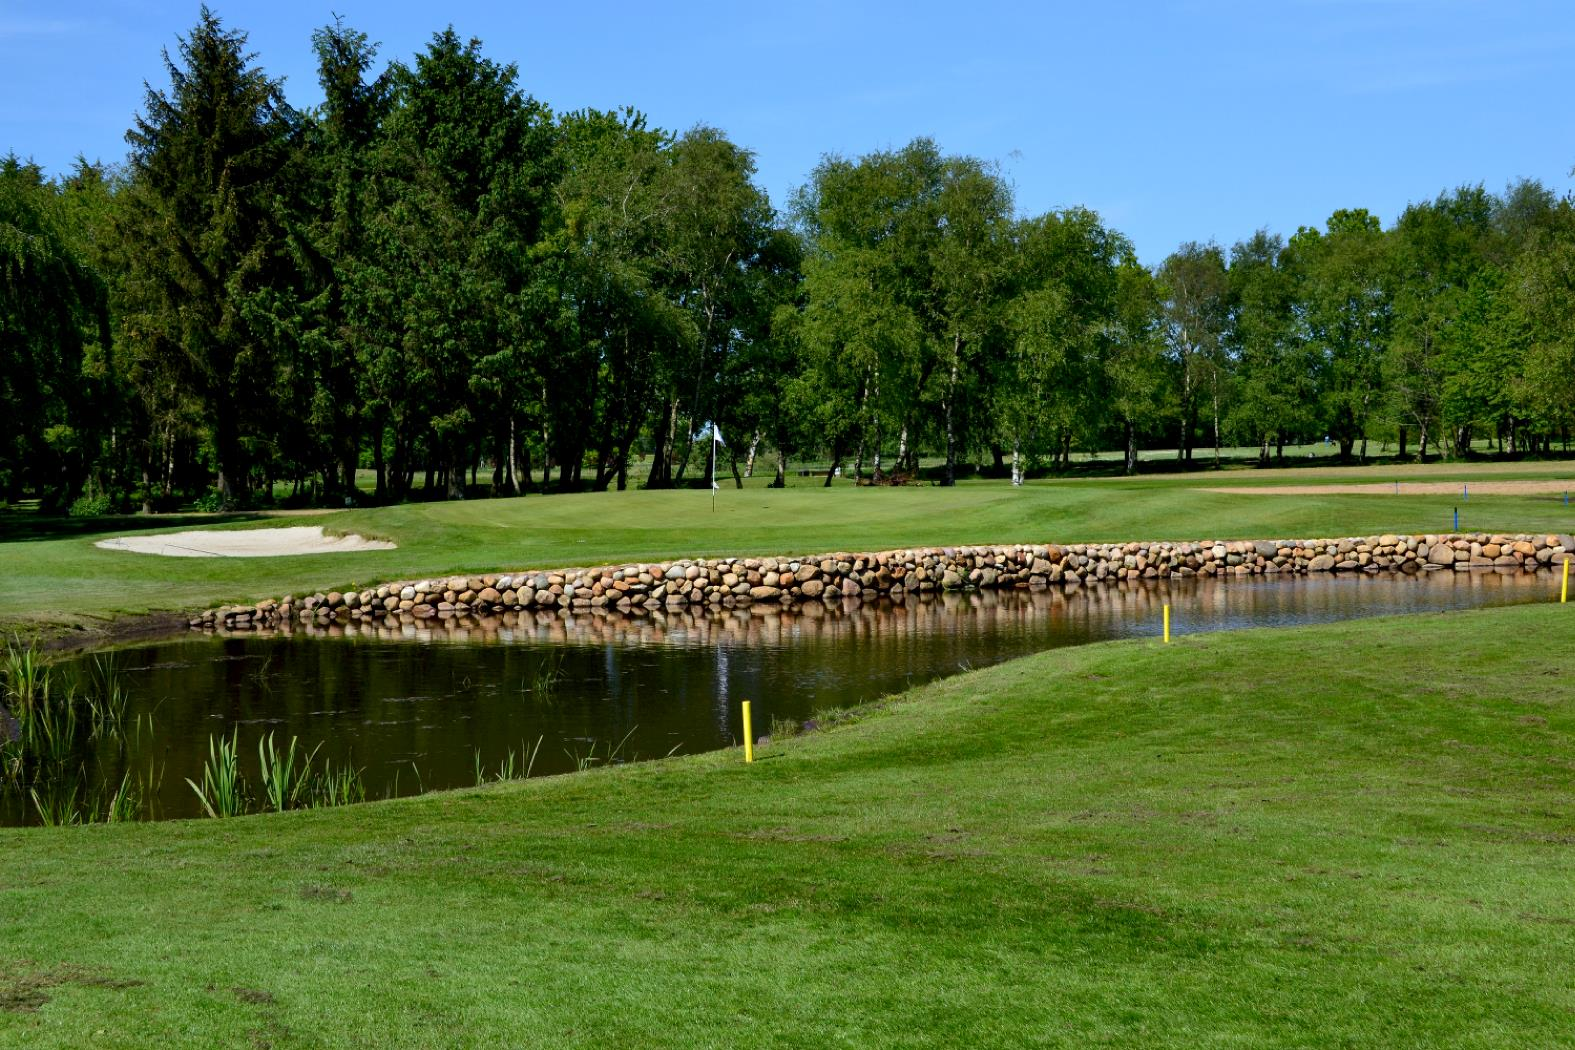 Overview of golf course named Herning Golf Club